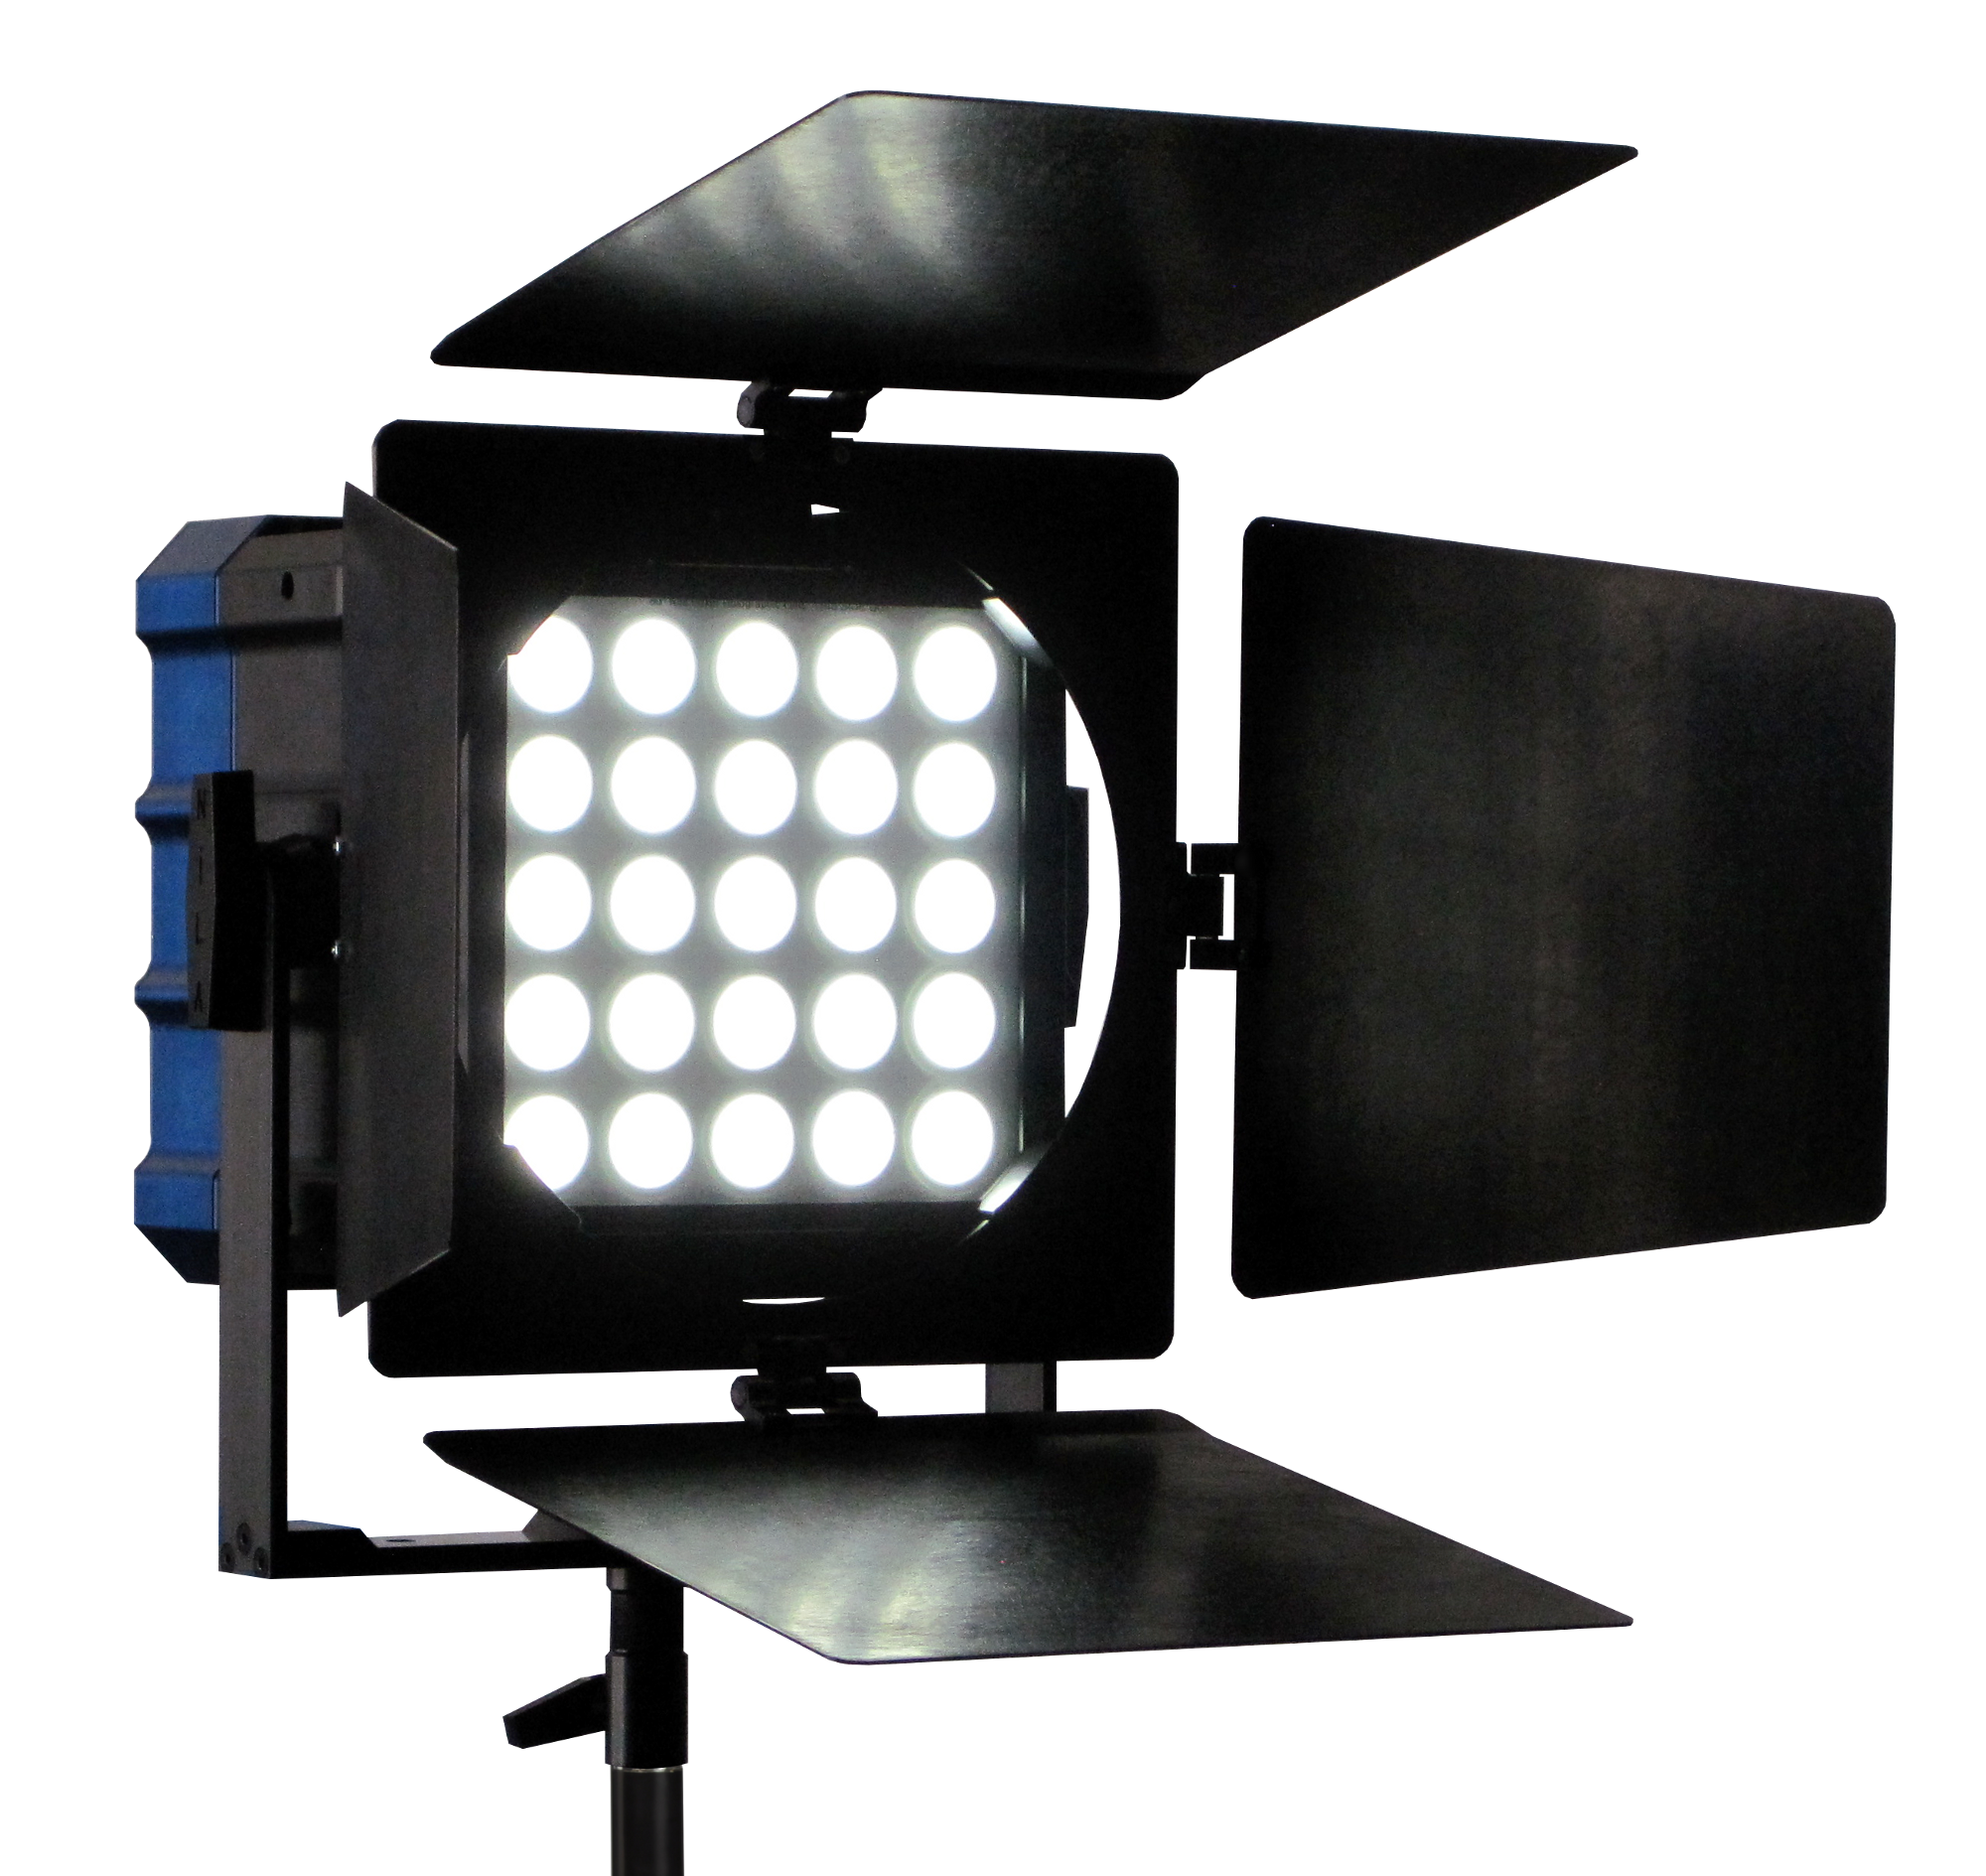 syd lights store light photography lighting camera yongnuo led